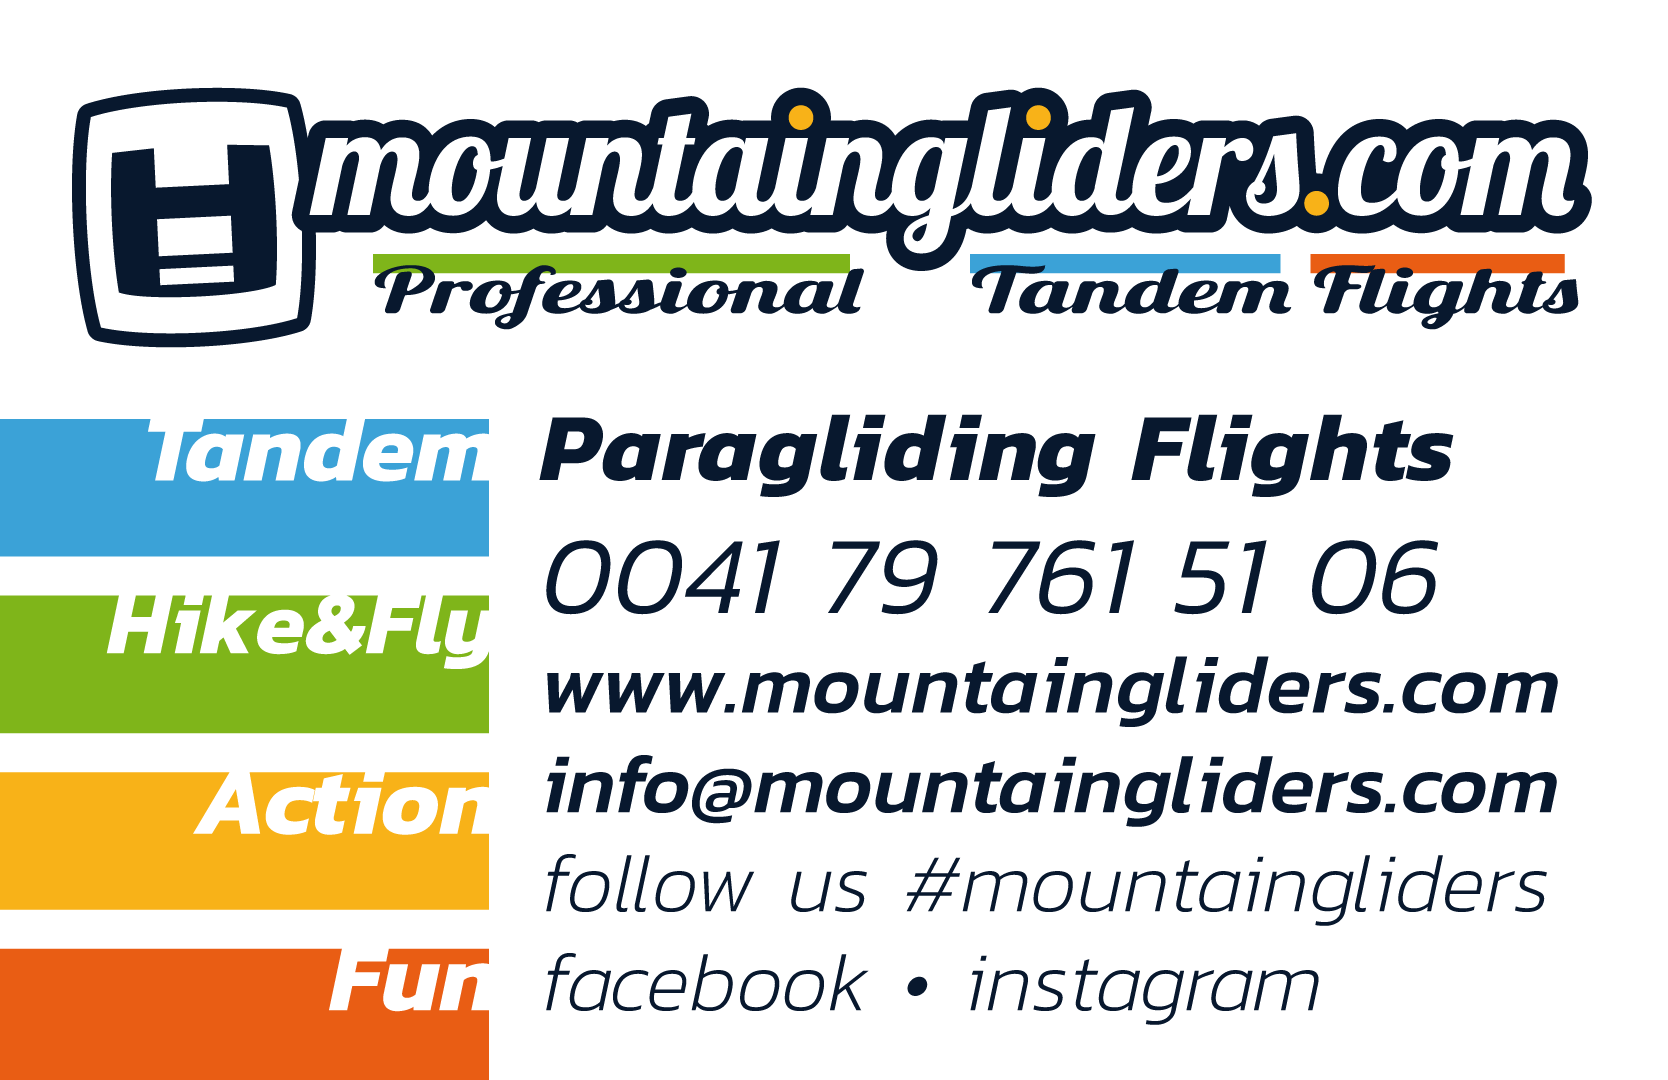 Logo from Mountaingliders - Professional Paragliding Tandem Flights in Ticino